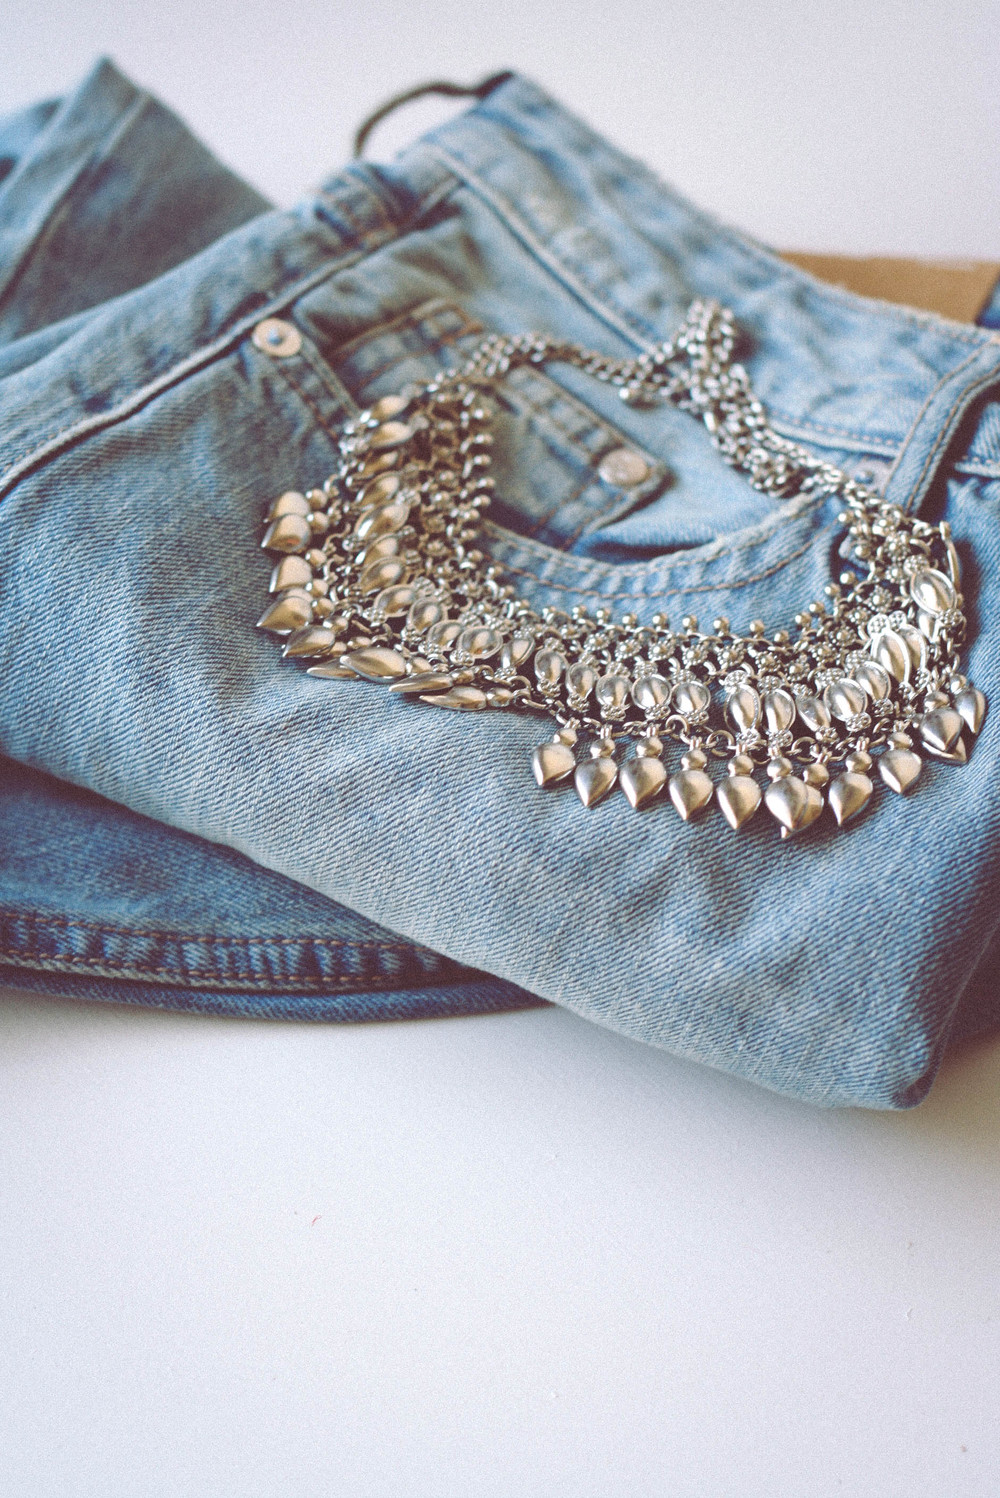 Also, I finally found a pair of boyfriend jeans that are awesome for H&M. And this amazing necklace from Forever 21!